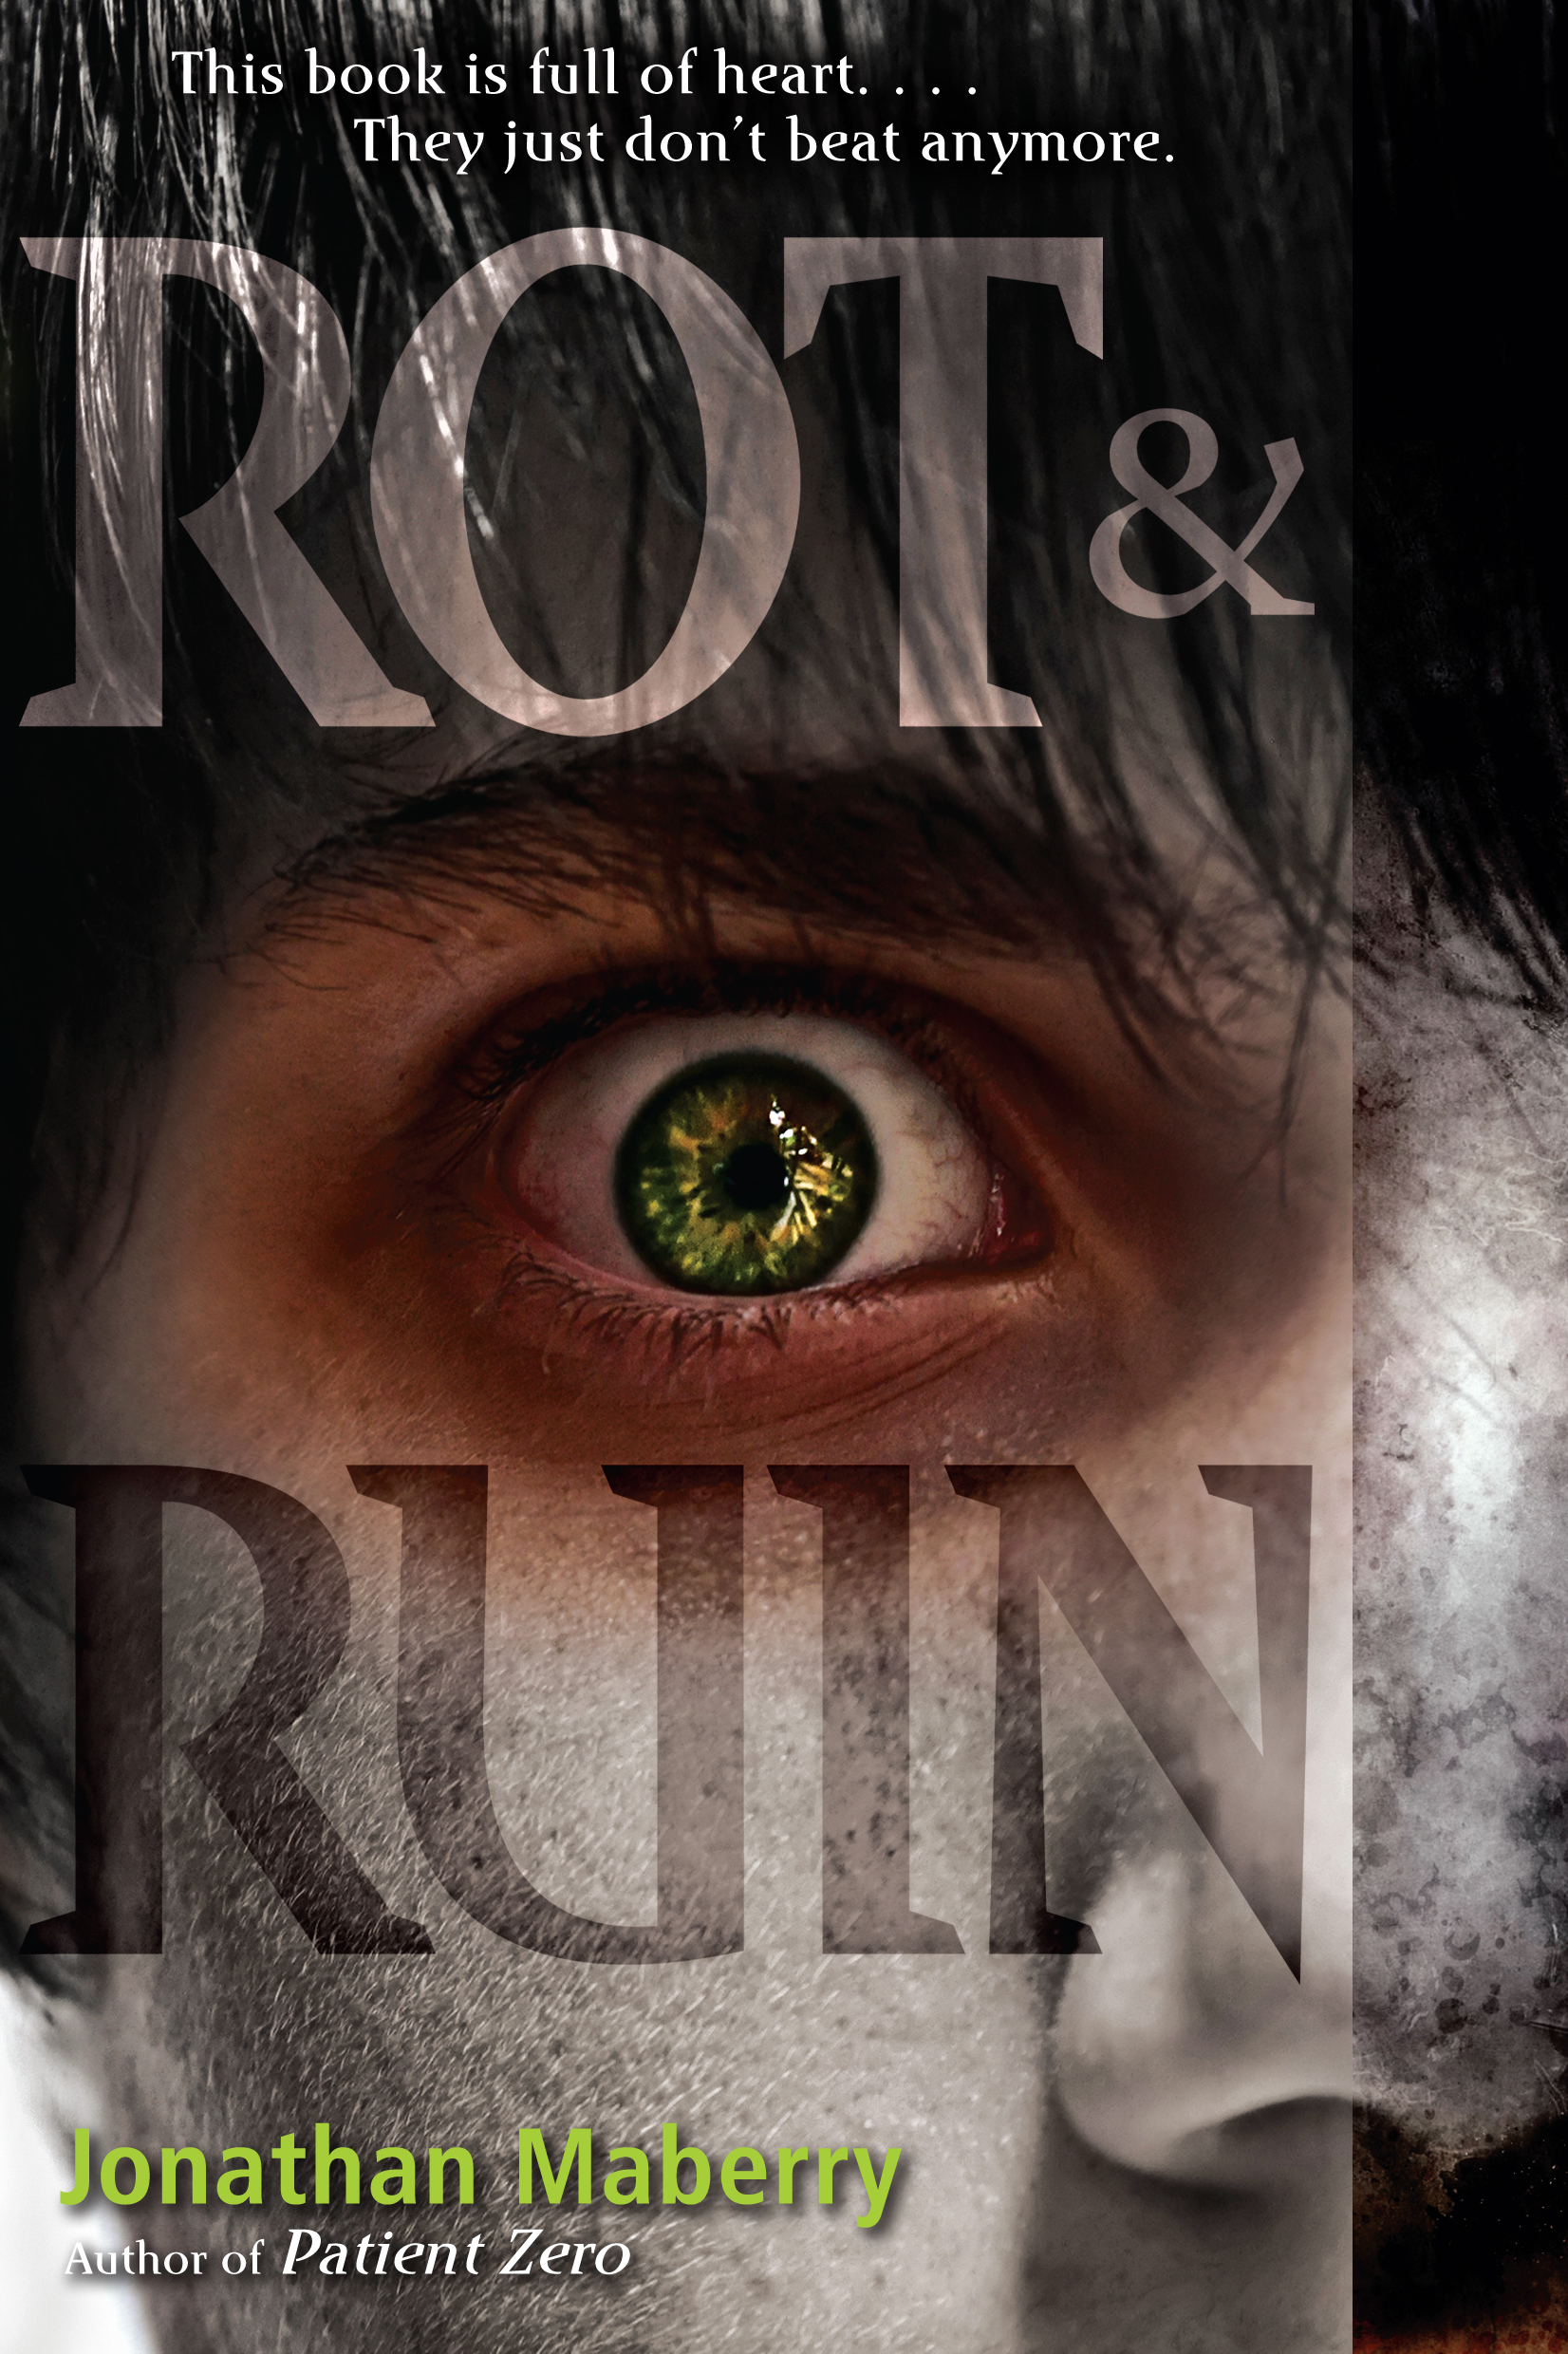 rot ruin Rot & ruin by jonathan maberry book reviews at young adult book central.